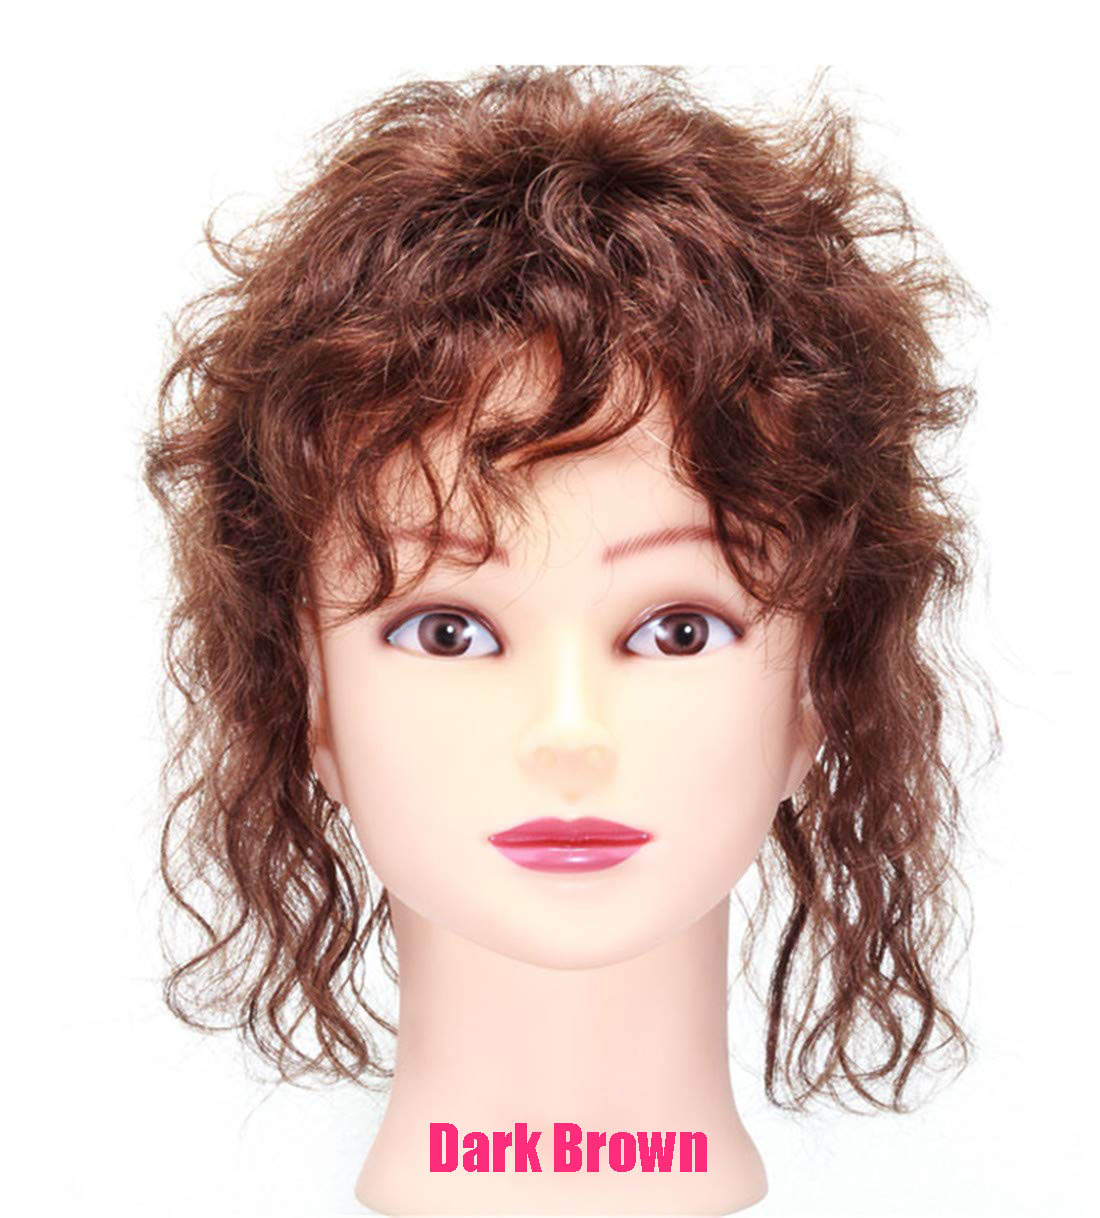 Invisible Human Hair Topper with Bangs for Women, Curly Wavy Crown Volume Hairpiece Clip in 3